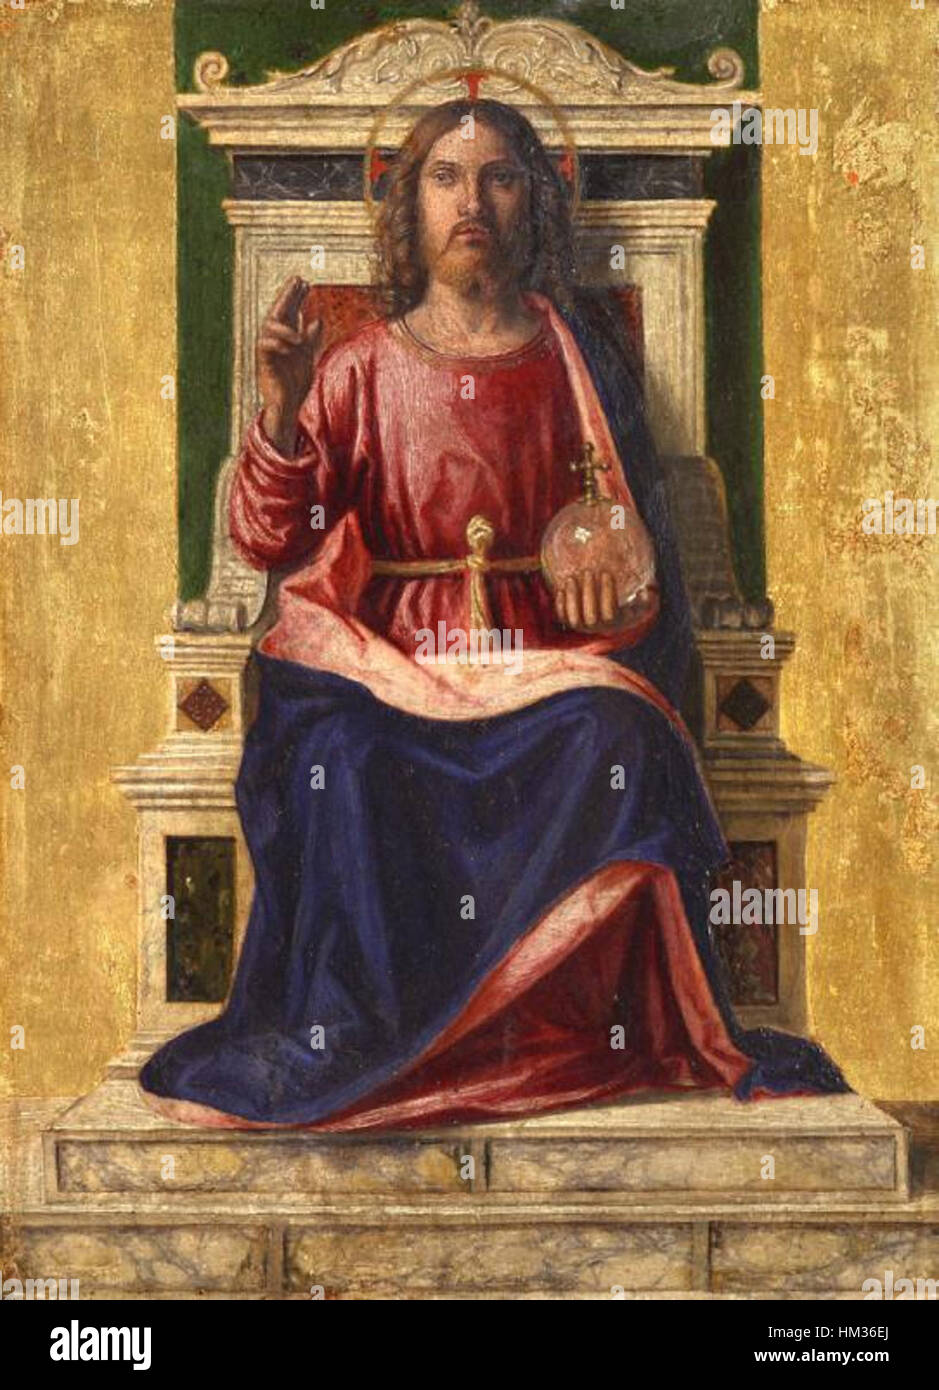 Jesus christ on the throne by cima da conegliano stock photo jesus christ on the throne by cima da conegliano altavistaventures